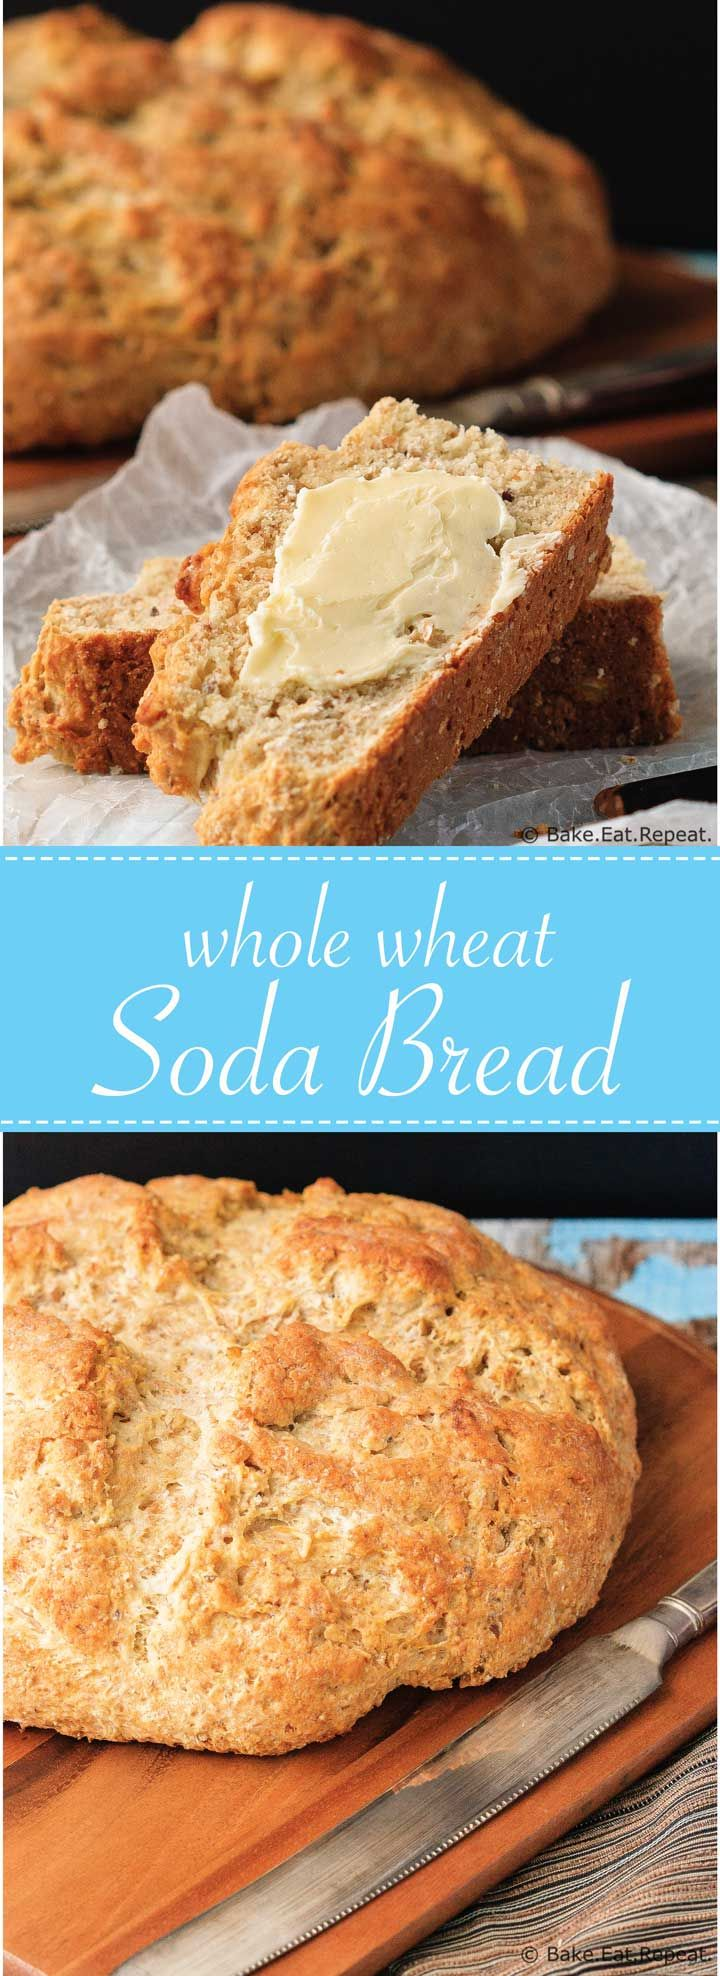 Whole Wheat Soda Bread - Quick and easy whole wheat soda bread - it mixes up in minutes and tastes fantastic!